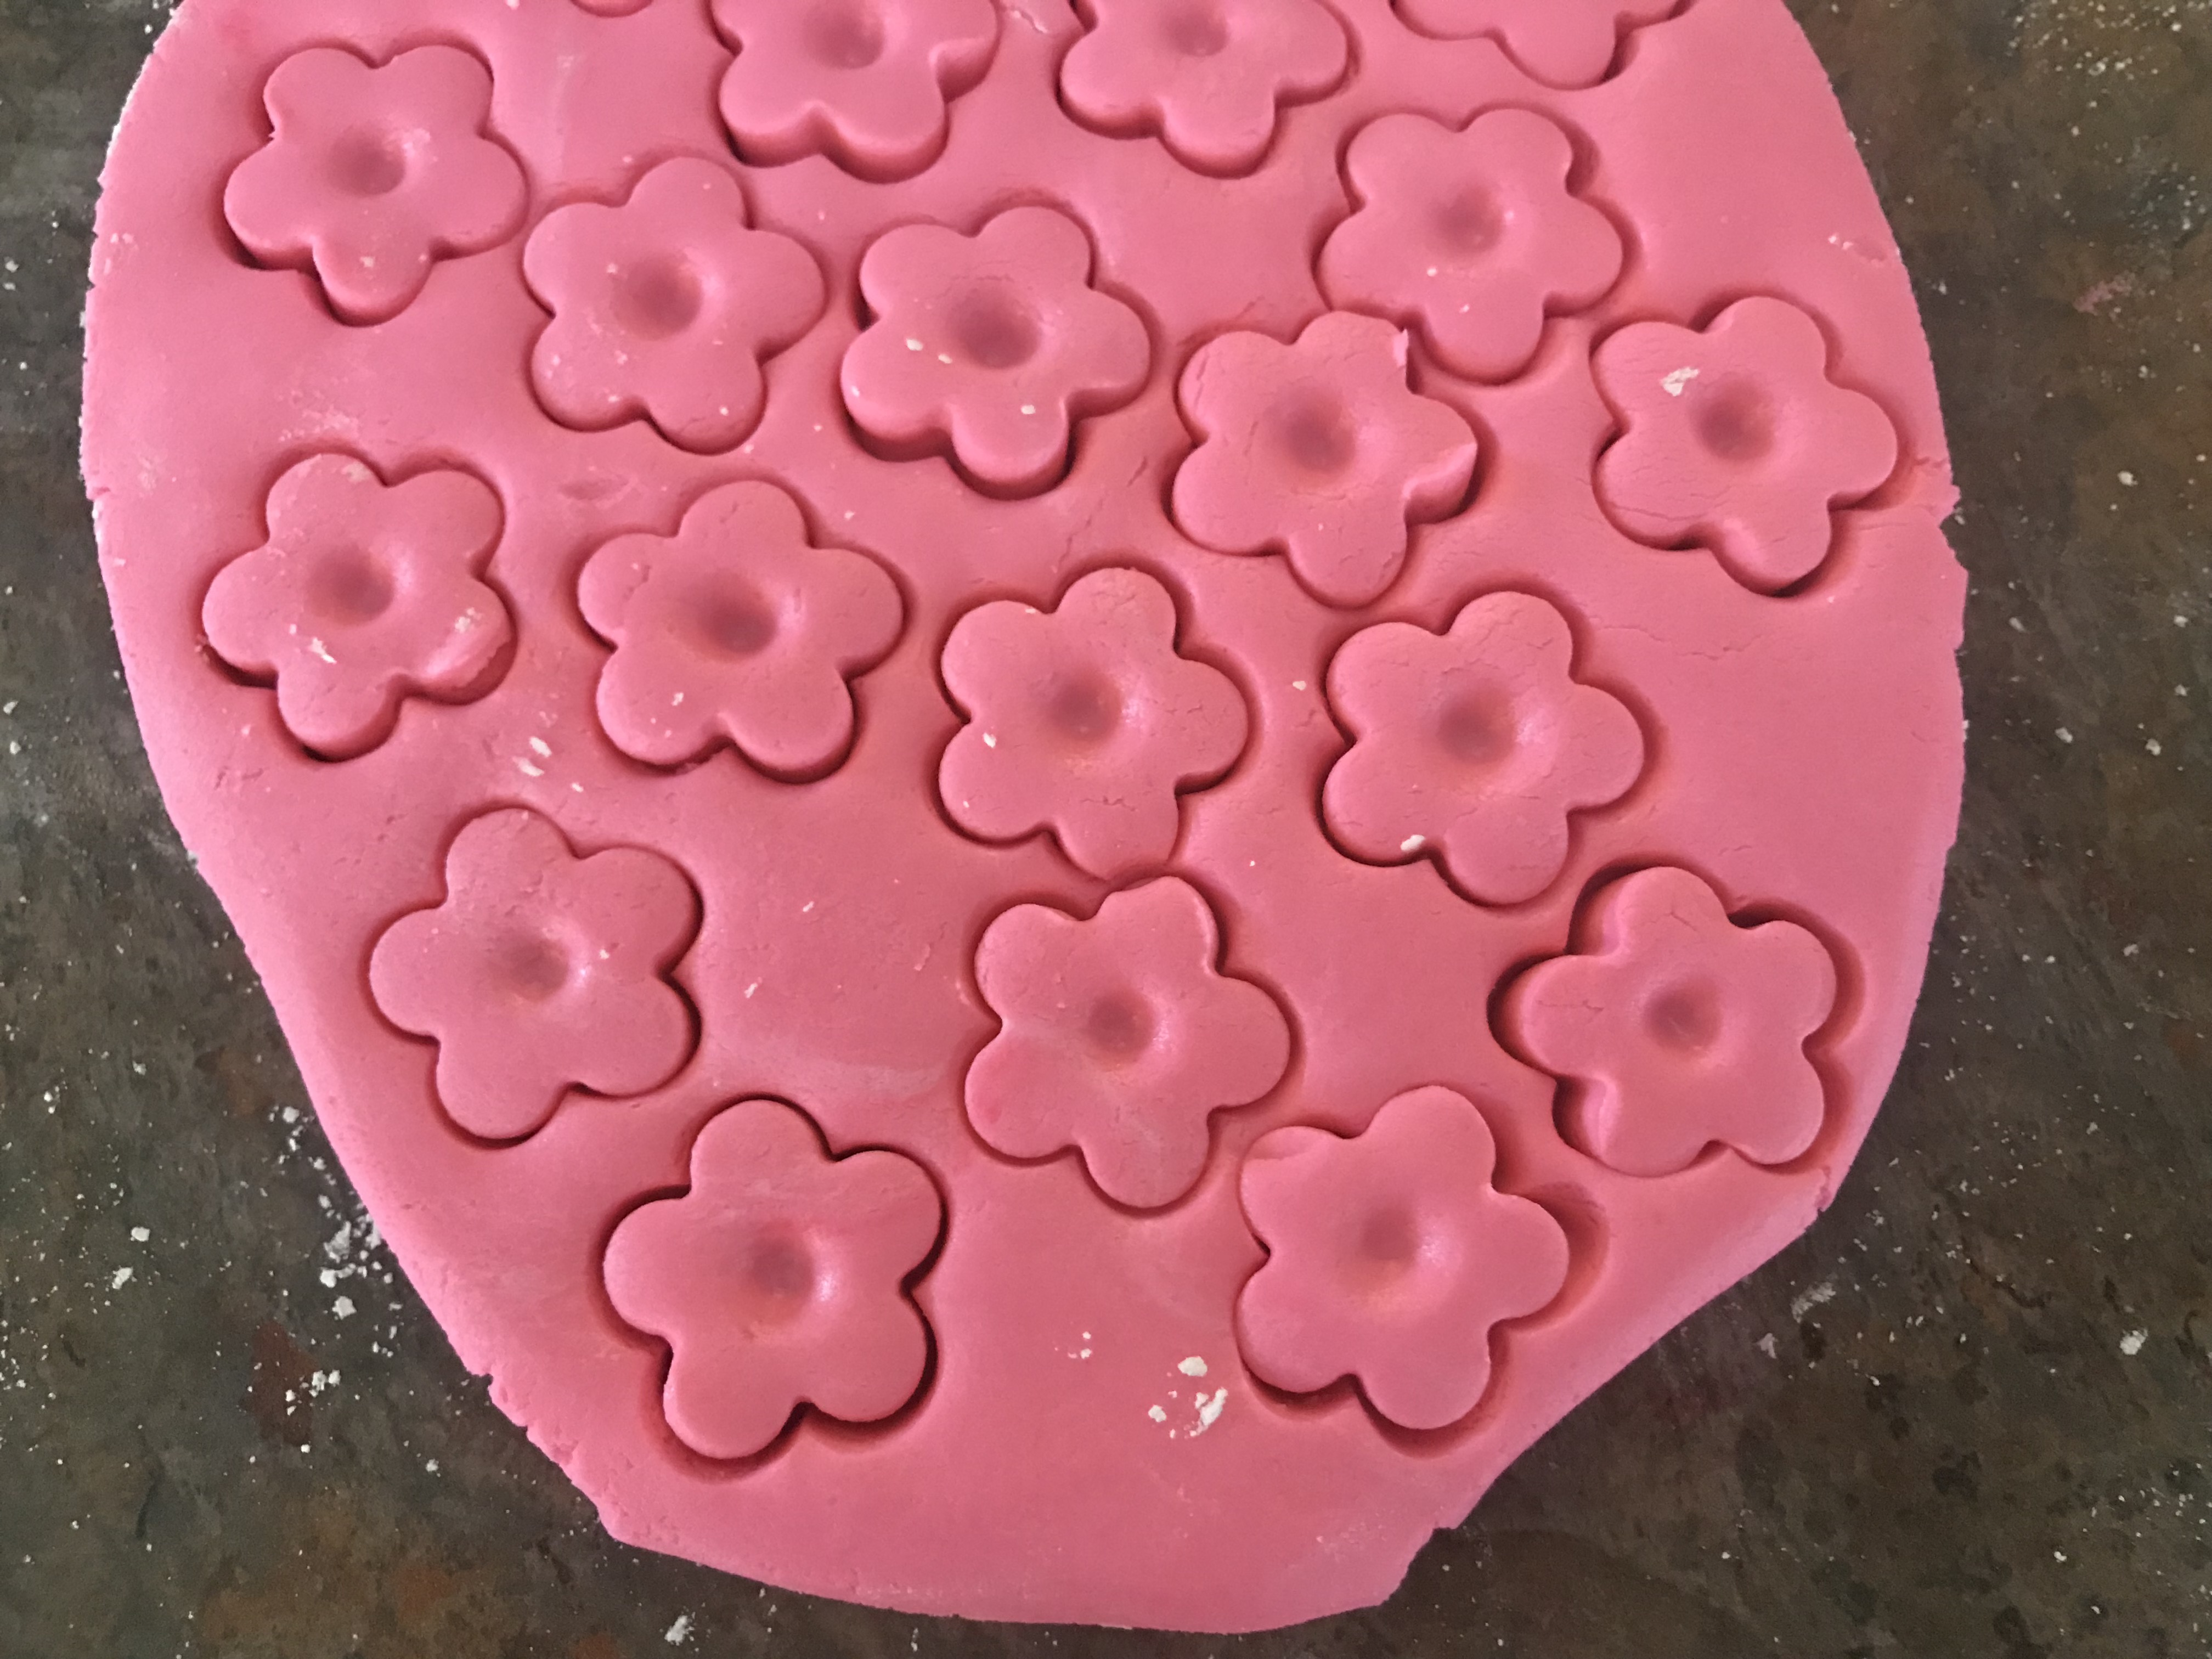 Butter Mint dough cut into flower shapes